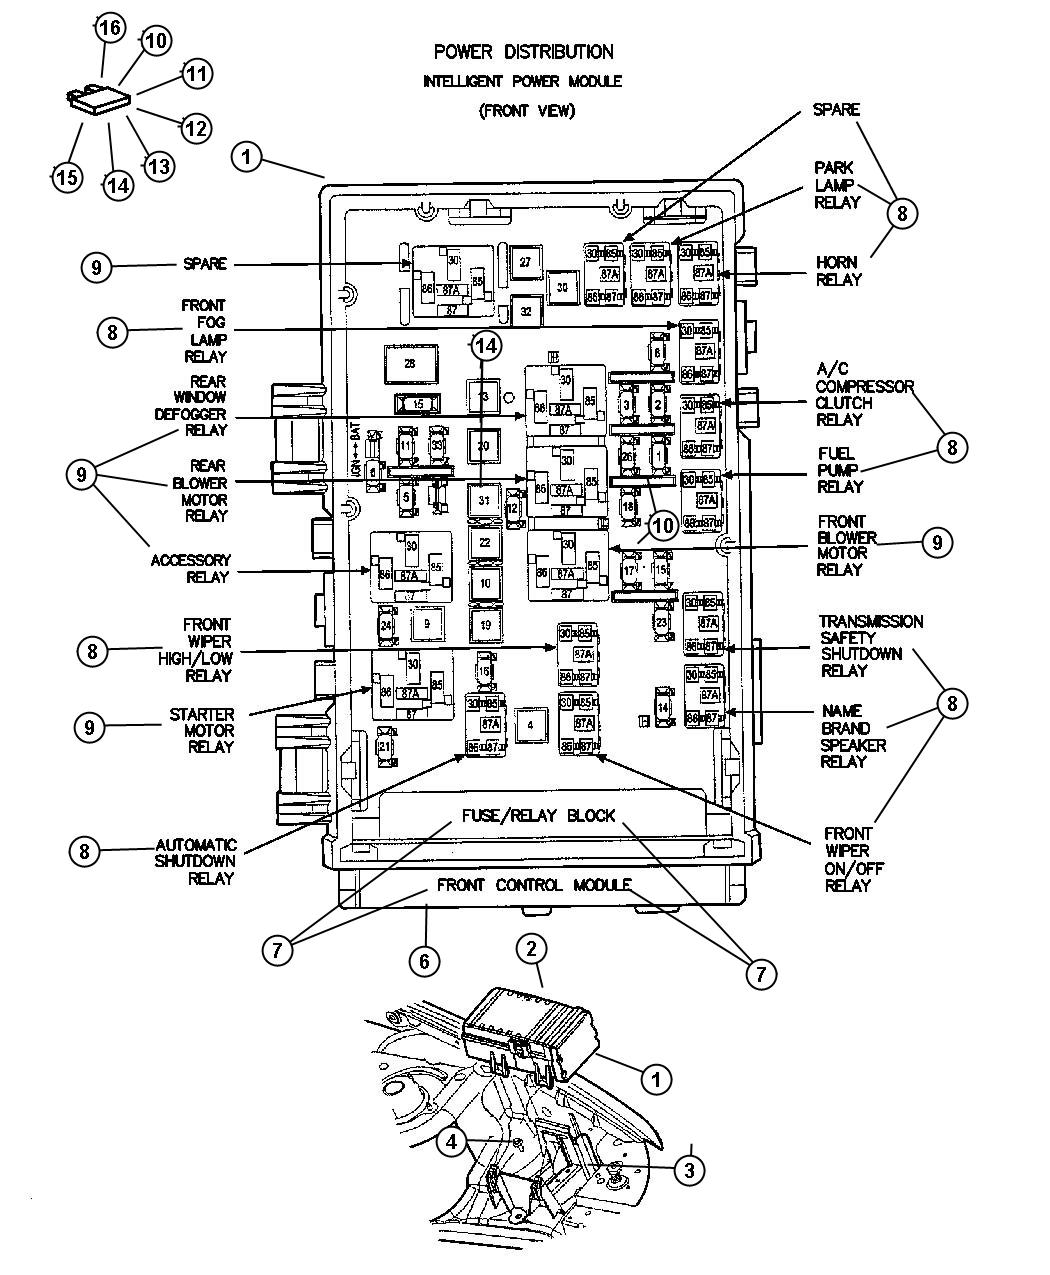 Jeep Liberty Module Front Control System Speaker